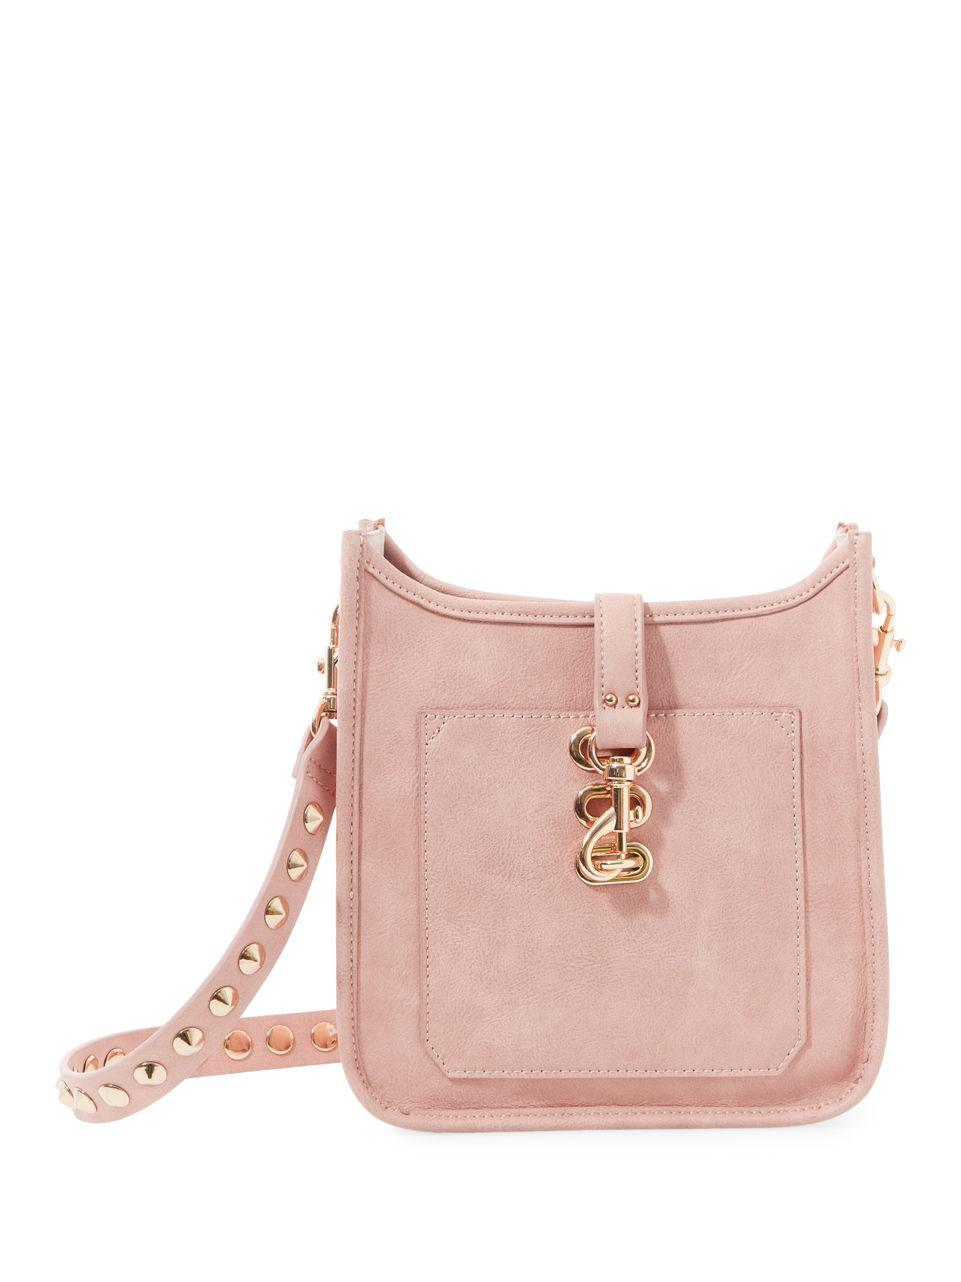 Lyst - Steve Madden Bwylie North South Crossbody Bag In Pink